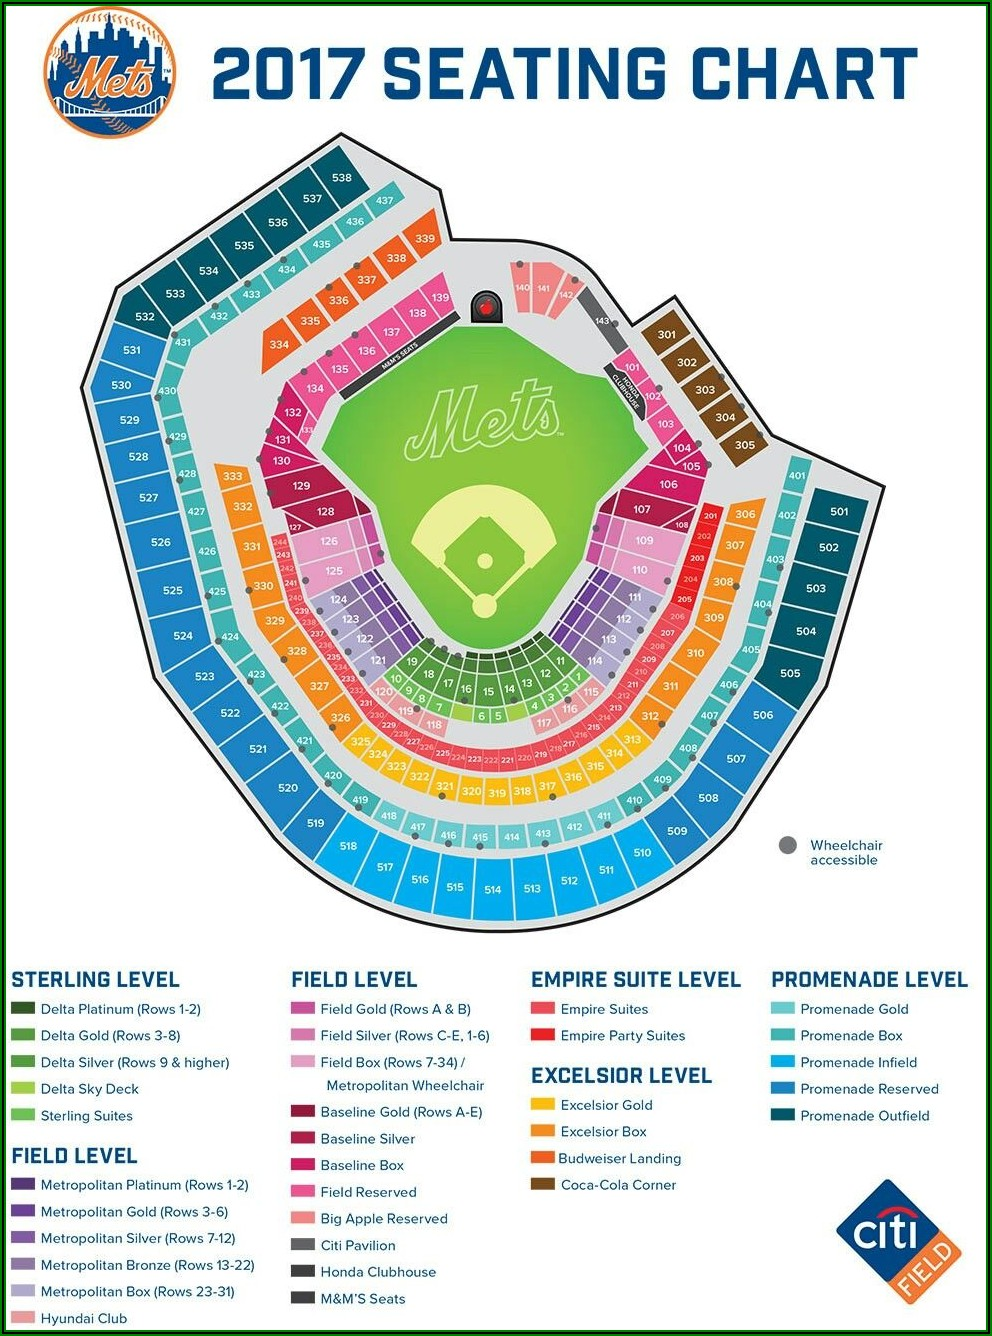 Citi Field Seating Chart With Rows And Seat Numbers